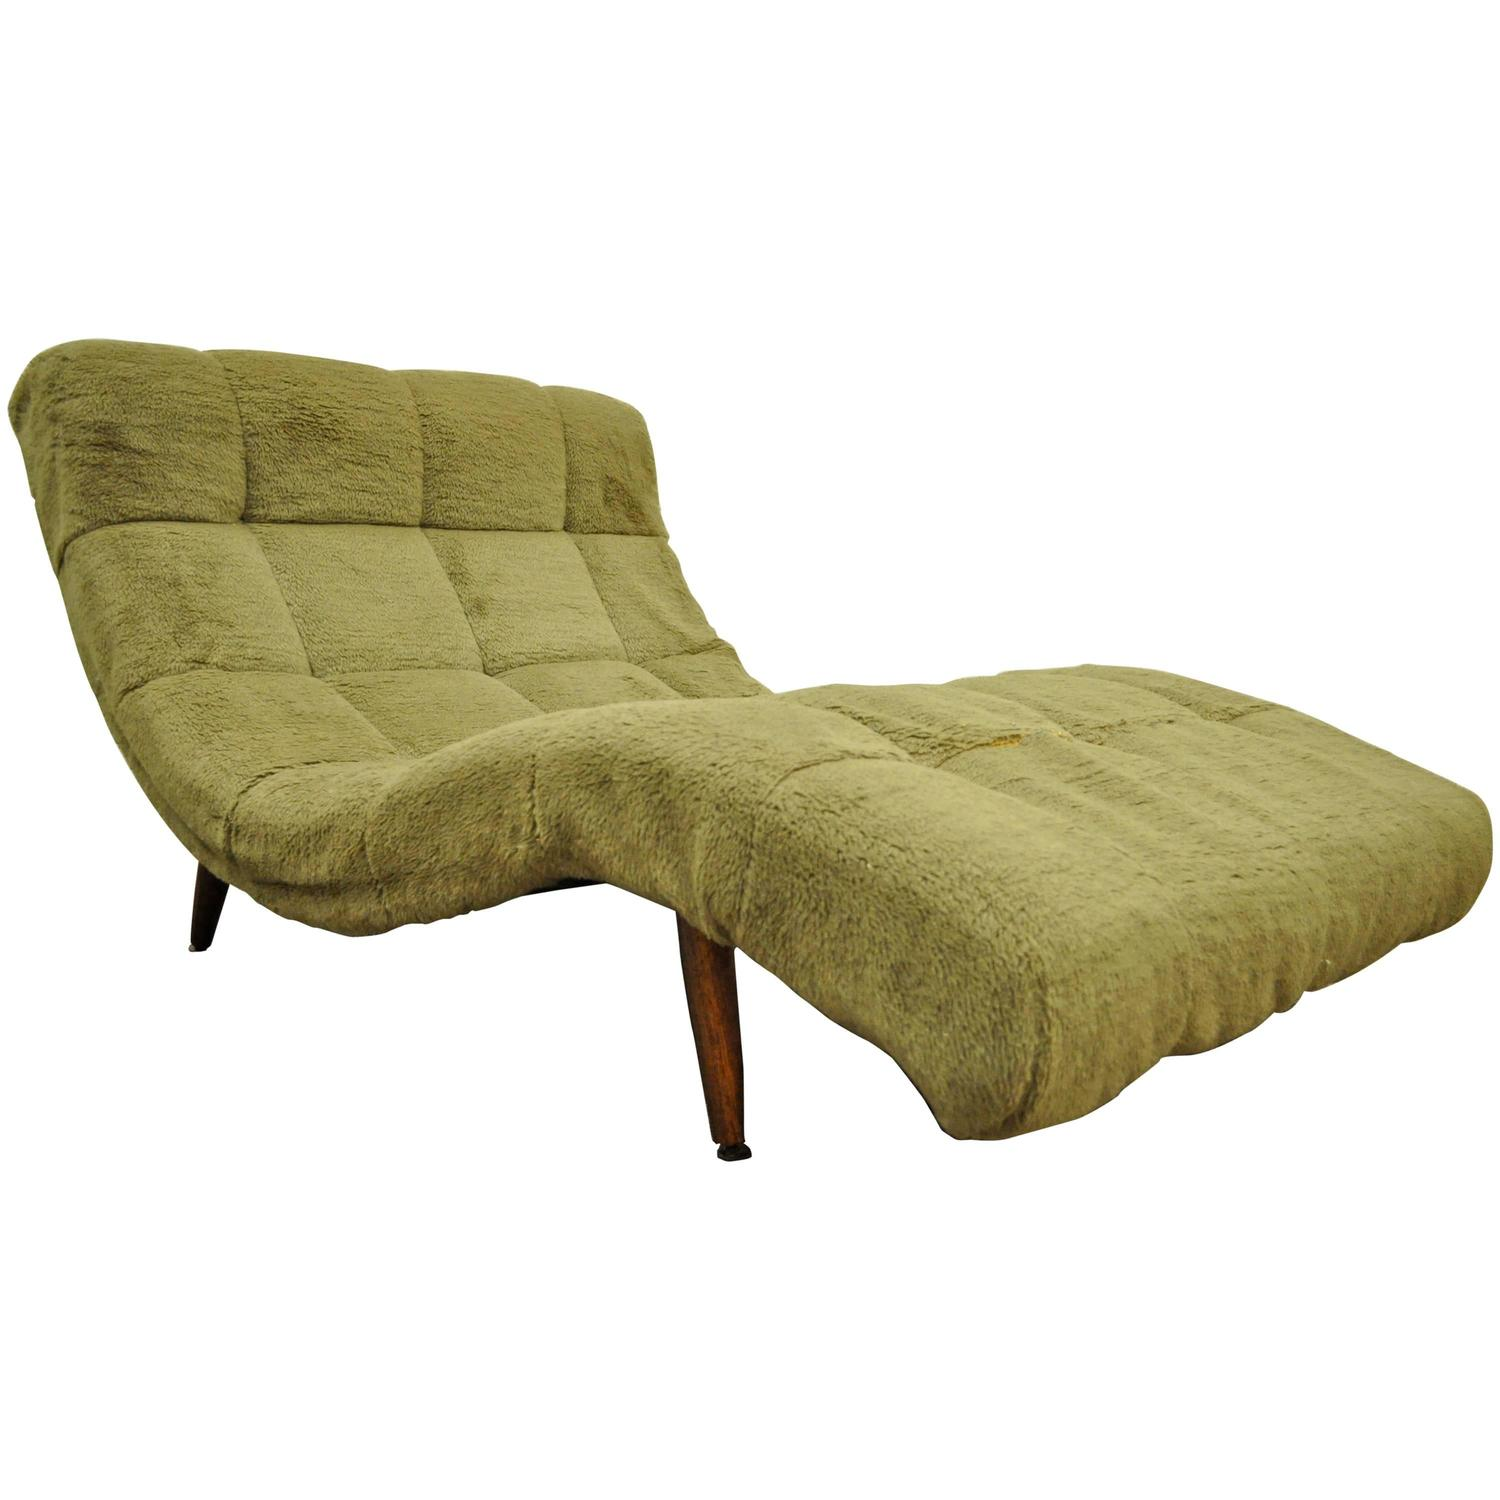 wide of chaise tufted brown indoor a cushions with buy sofas sofa double lounge off additional prepossessing amusing